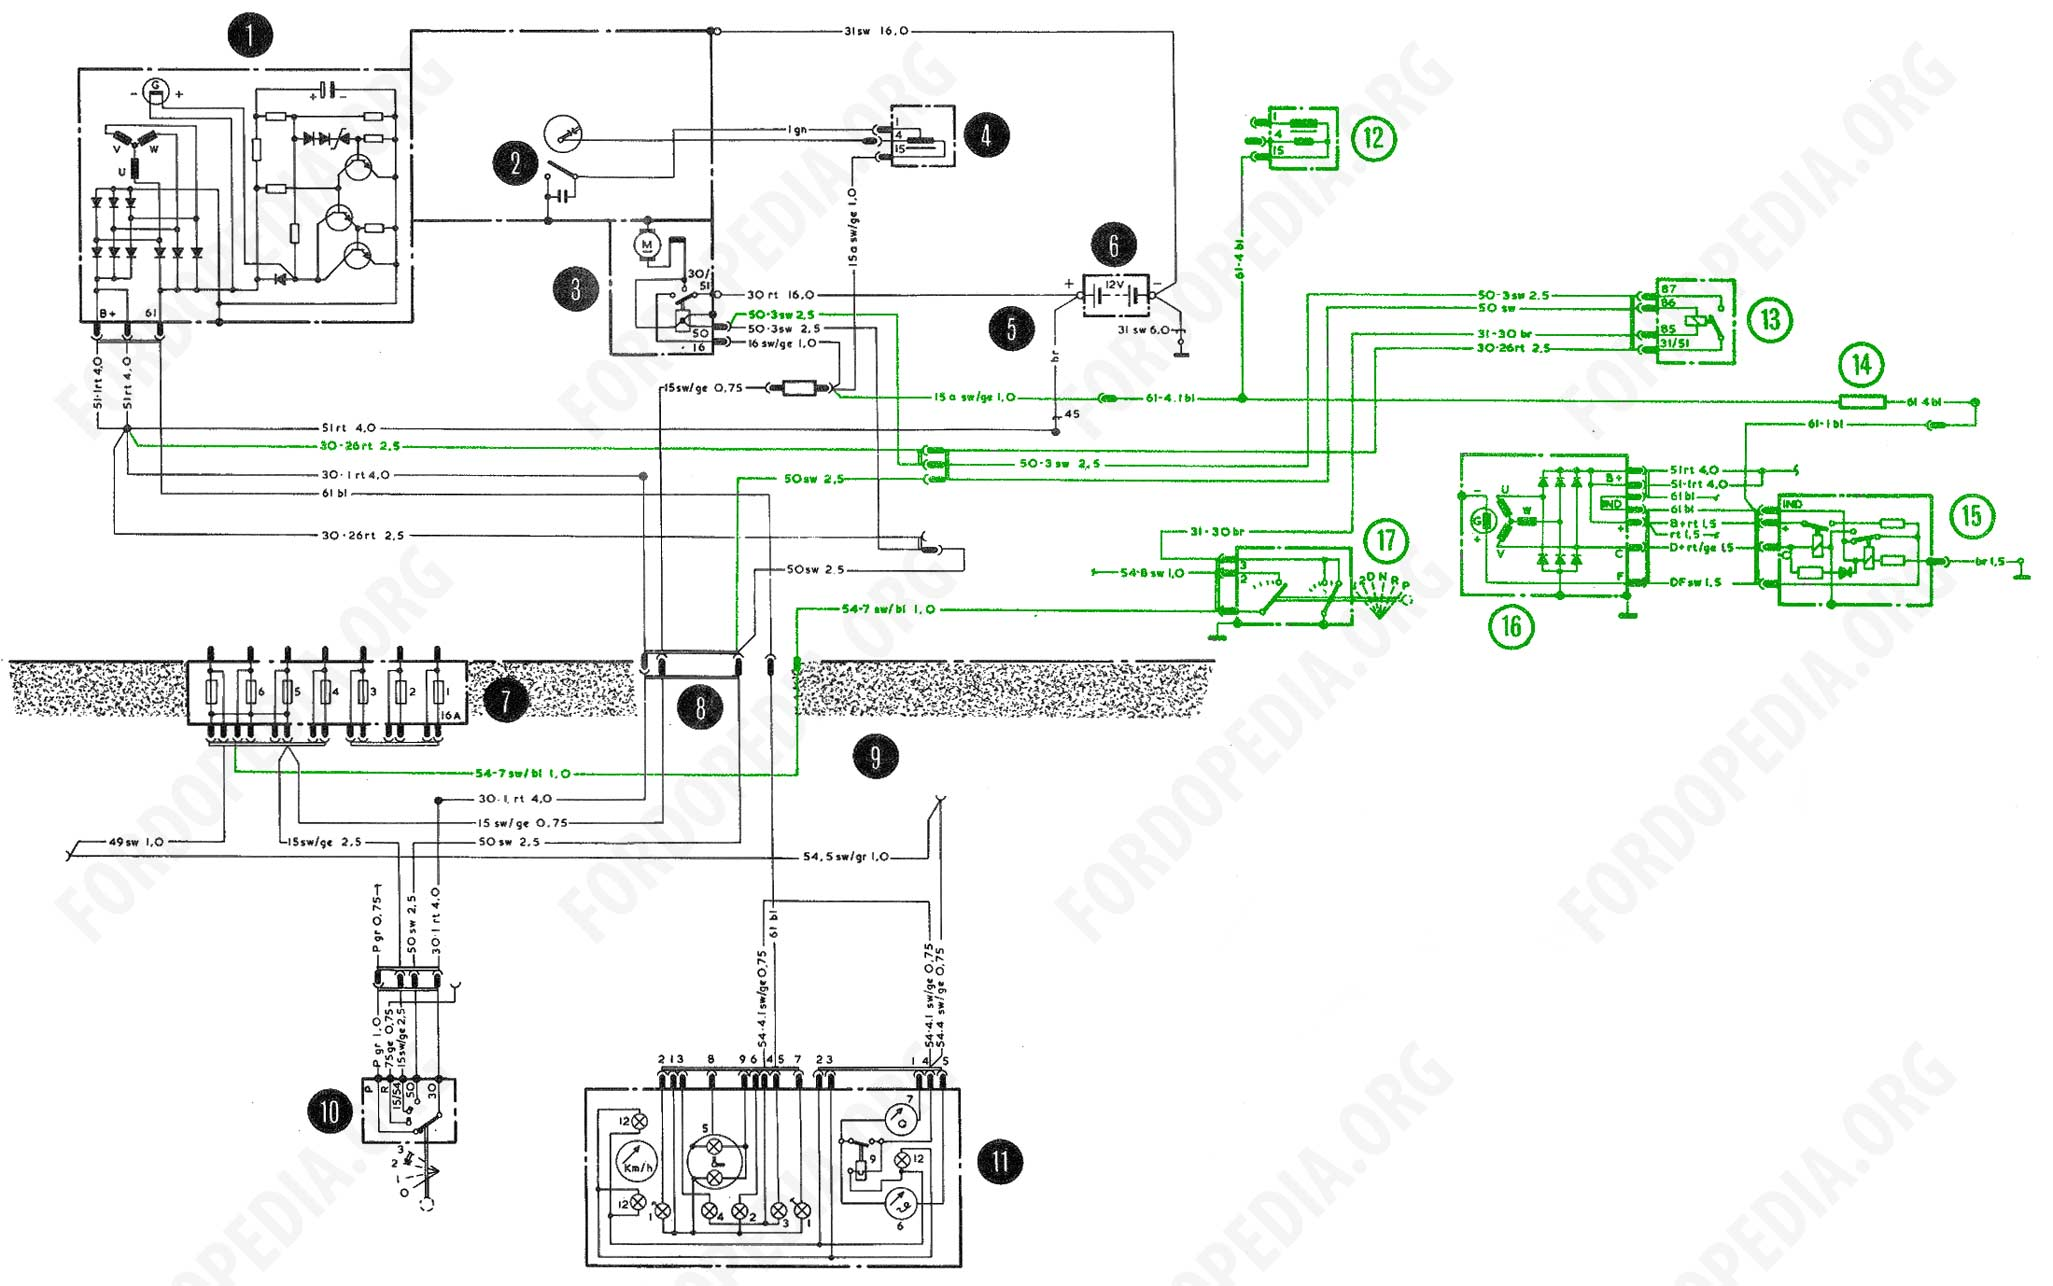 fordopedia.org Basic Starting Wiring Diagrams on basic lens diagrams, basic dimensions, basic wiring layout, basic wiring techniques, basic blueprints, basic wiring of ac motor, basic wiring riding mower, basic hvac diagrams, basic wiring light, motor control diagrams, basic electronics diagrams, basic engine diagrams, basic wiring for dummies, basic wiring fan, basic plug wiring, communication diagrams, construction diagrams, basic schematics, landscaping diagrams, basic wiring symbols,